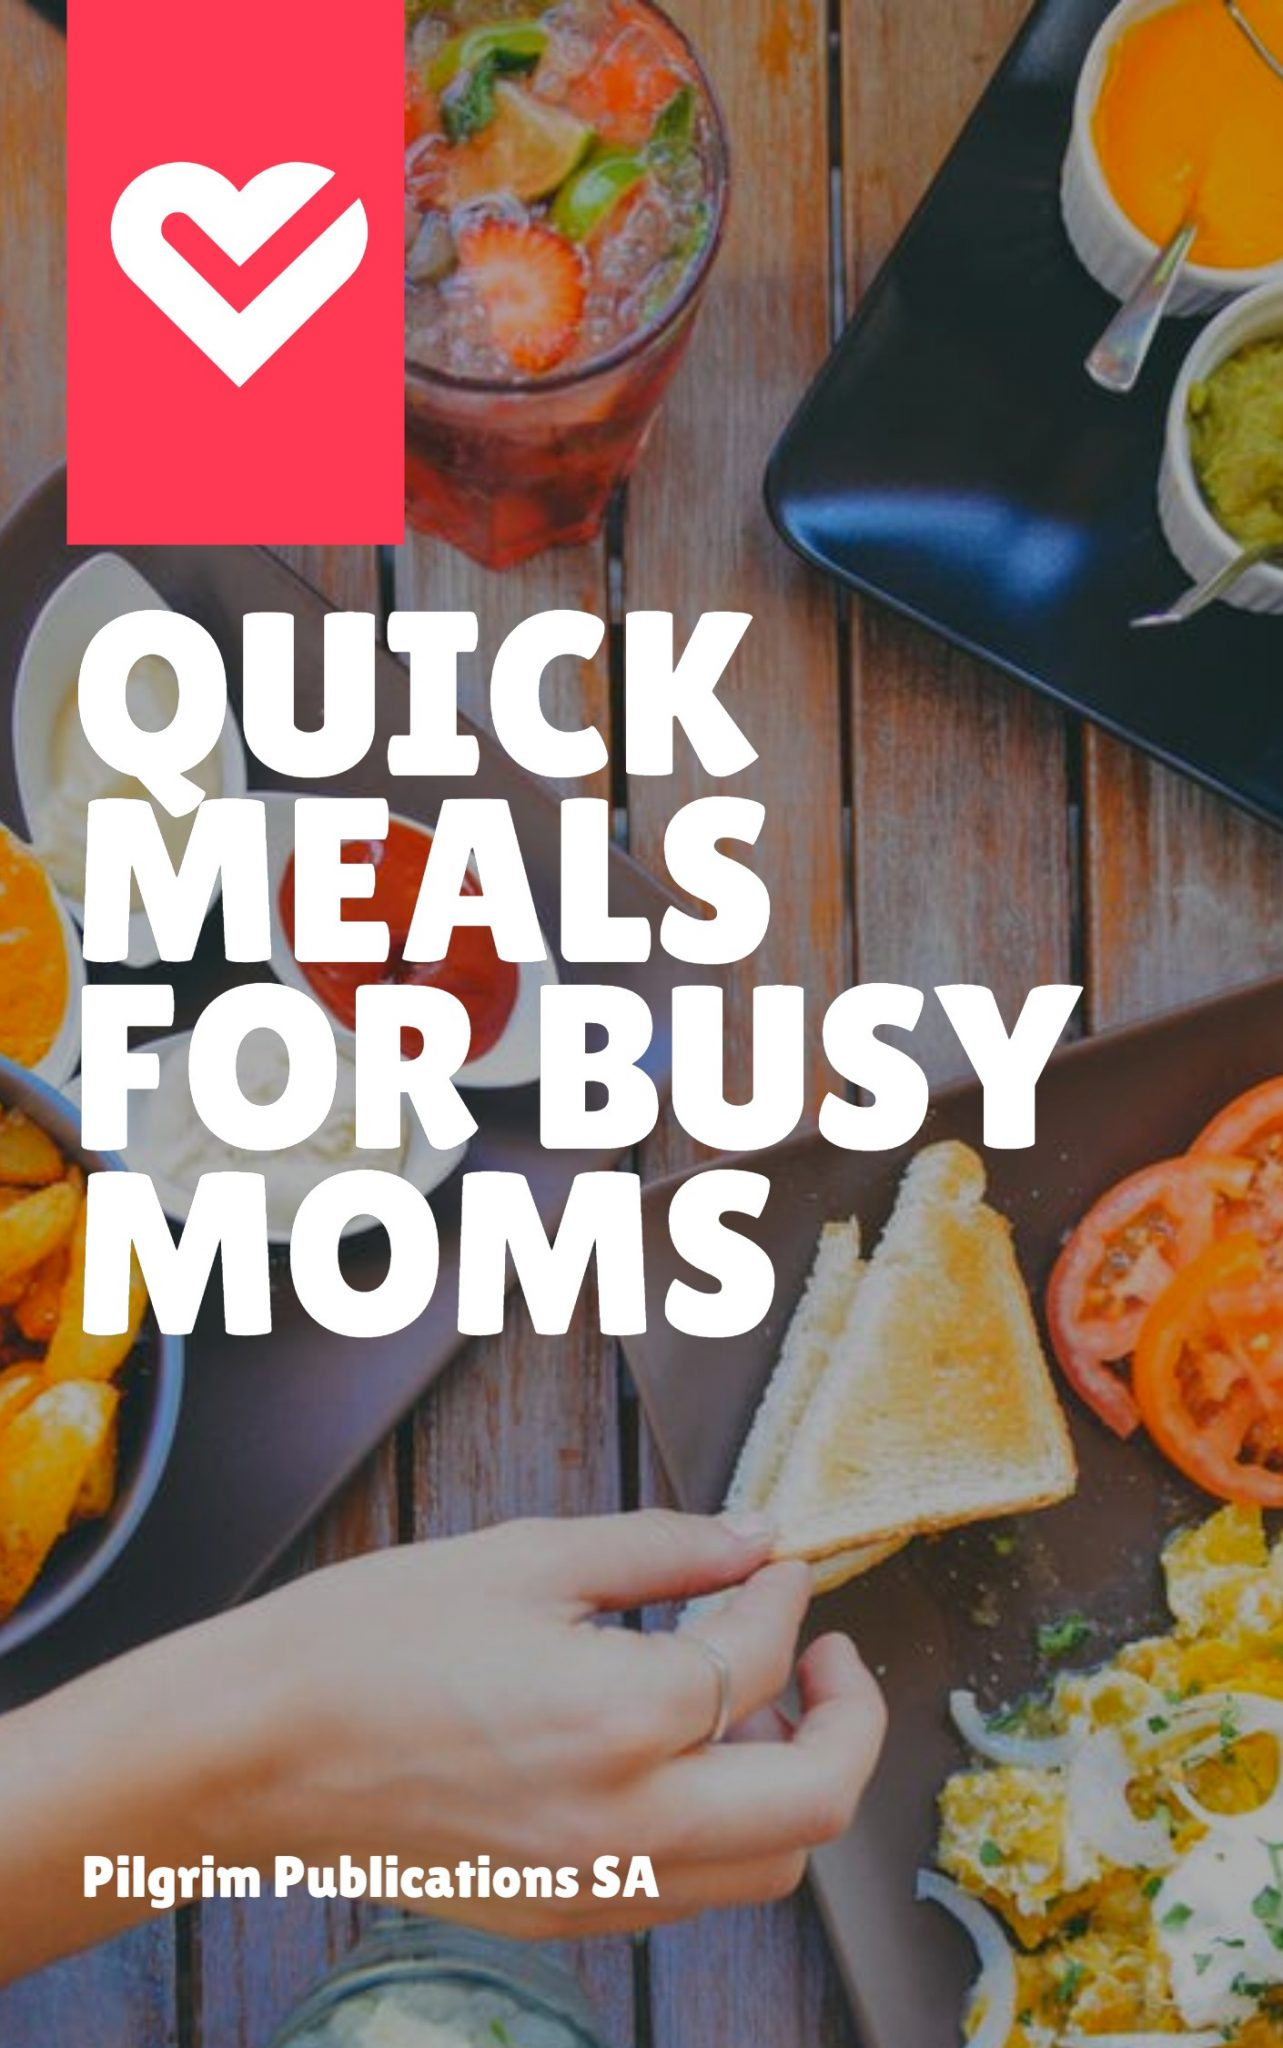 Quick Meals for Busy Moms Image